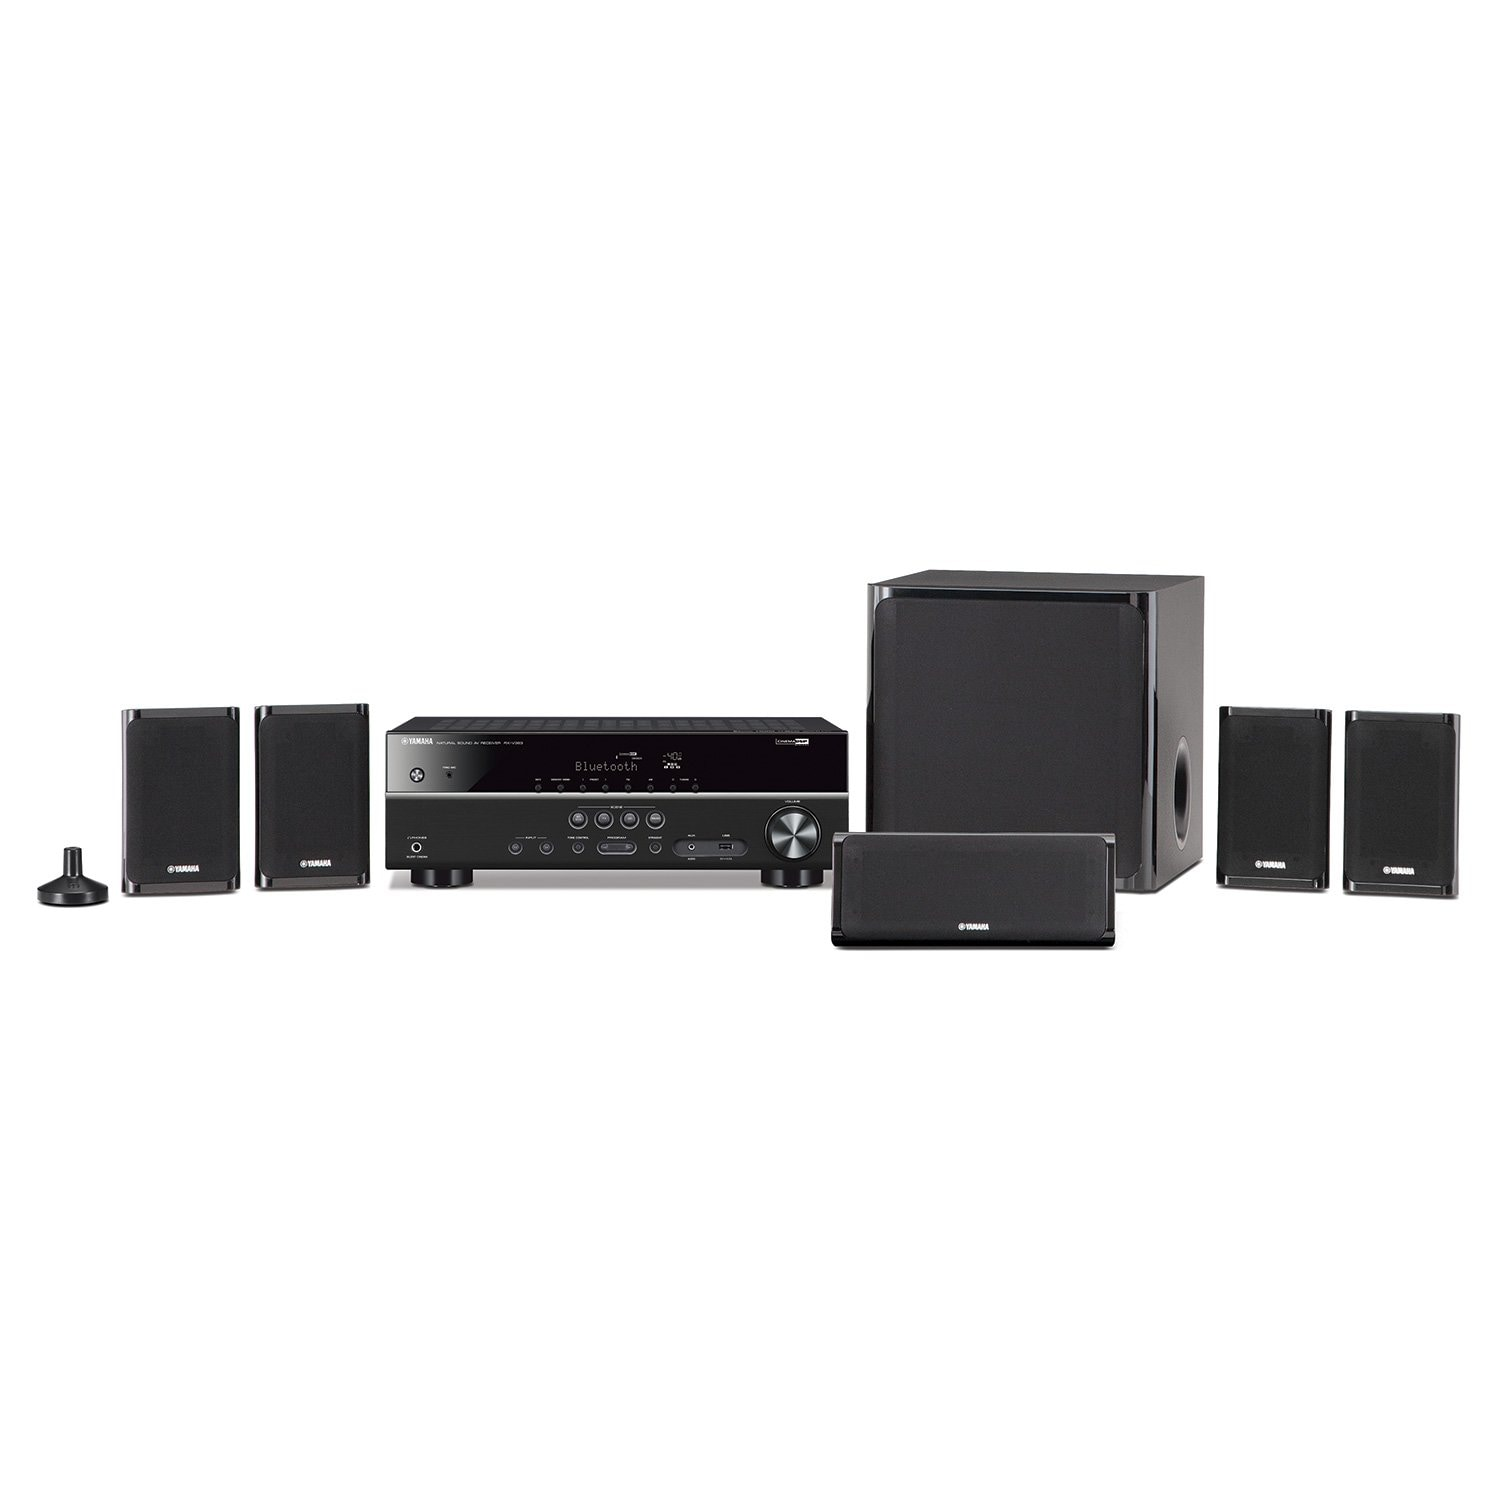 yht 4930ubl overview home theater systems audio. Black Bedroom Furniture Sets. Home Design Ideas